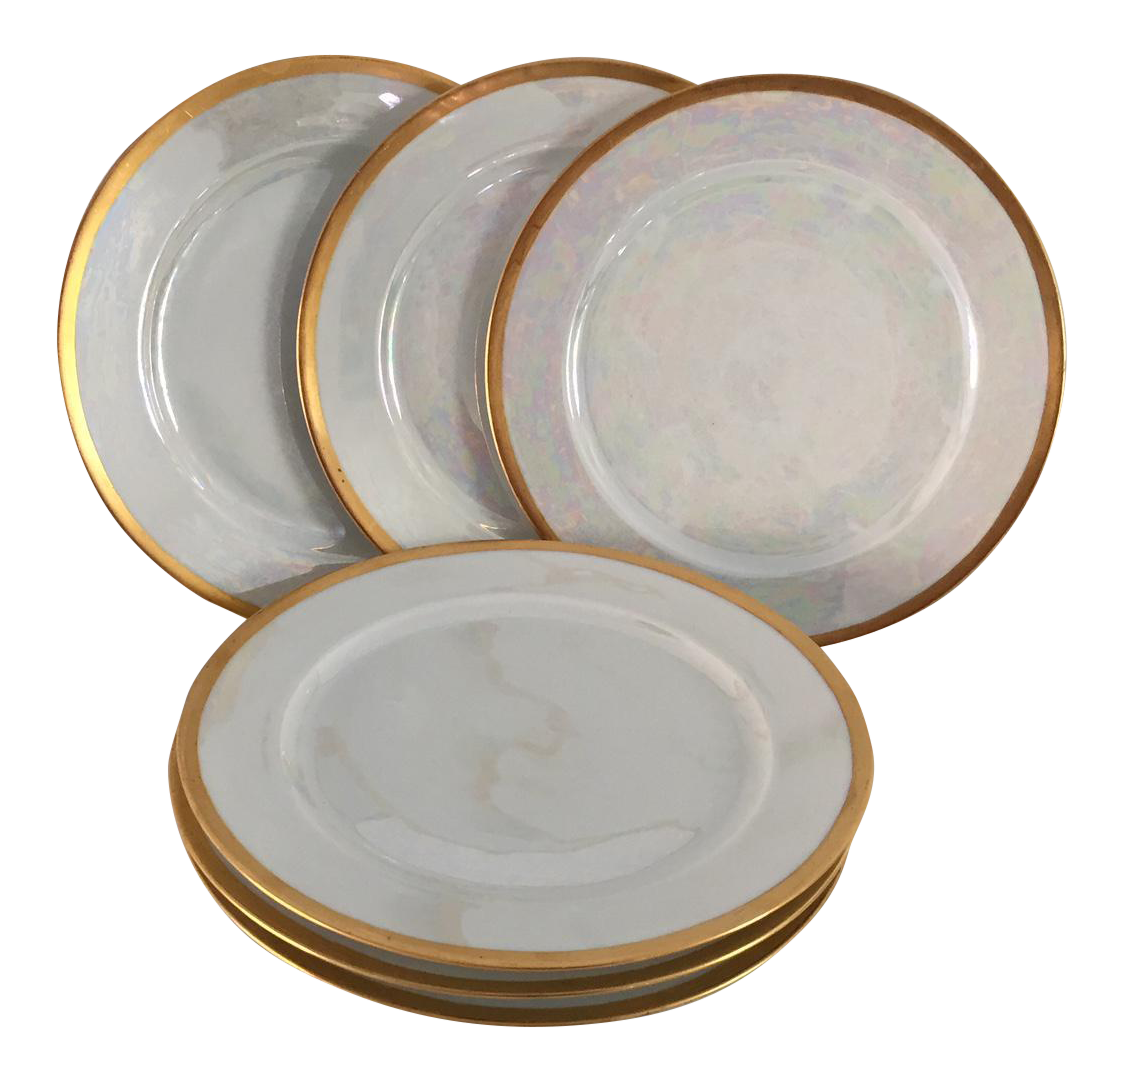 Vintage Lustreware Thomas Bavaria Gold Rim White Salad Plates - Set of 6 | Chairish  sc 1 st  Chairish & Vintage Lustreware Thomas Bavaria Gold Rim White Salad Plates - Set ...